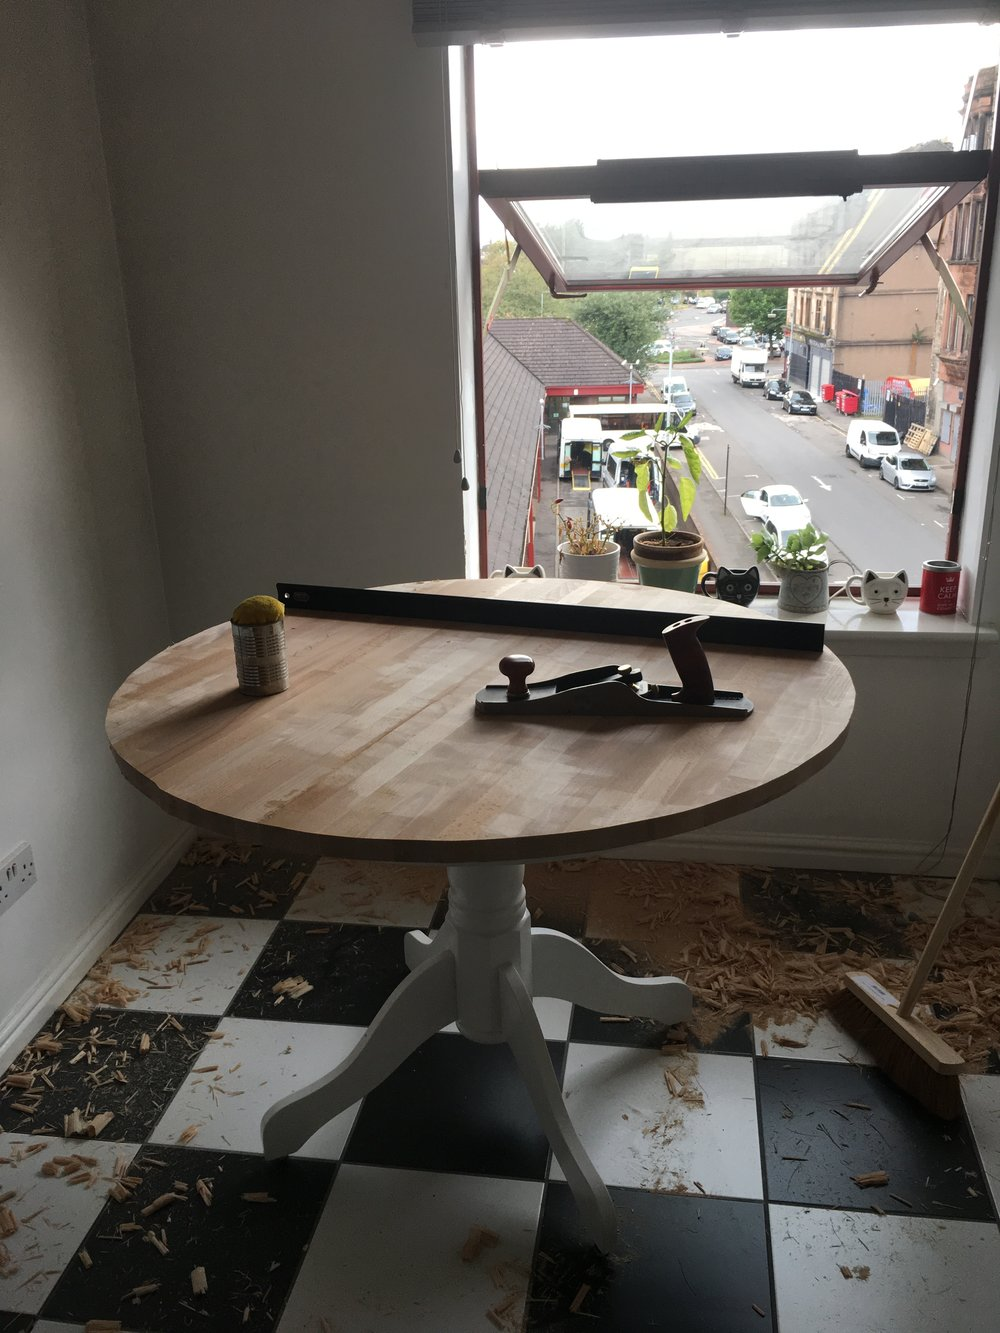 The roundish table top